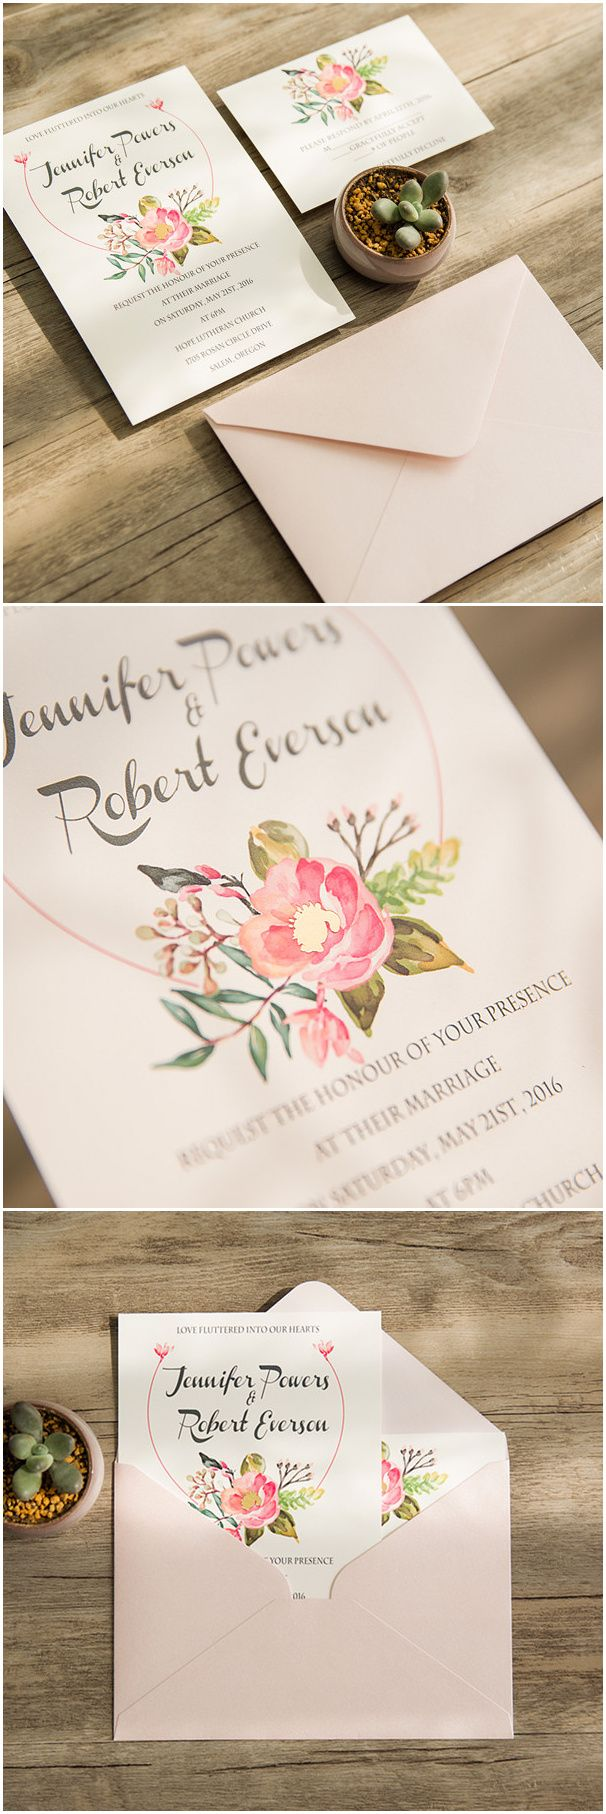 chic foiled floral wedding invitations for spring